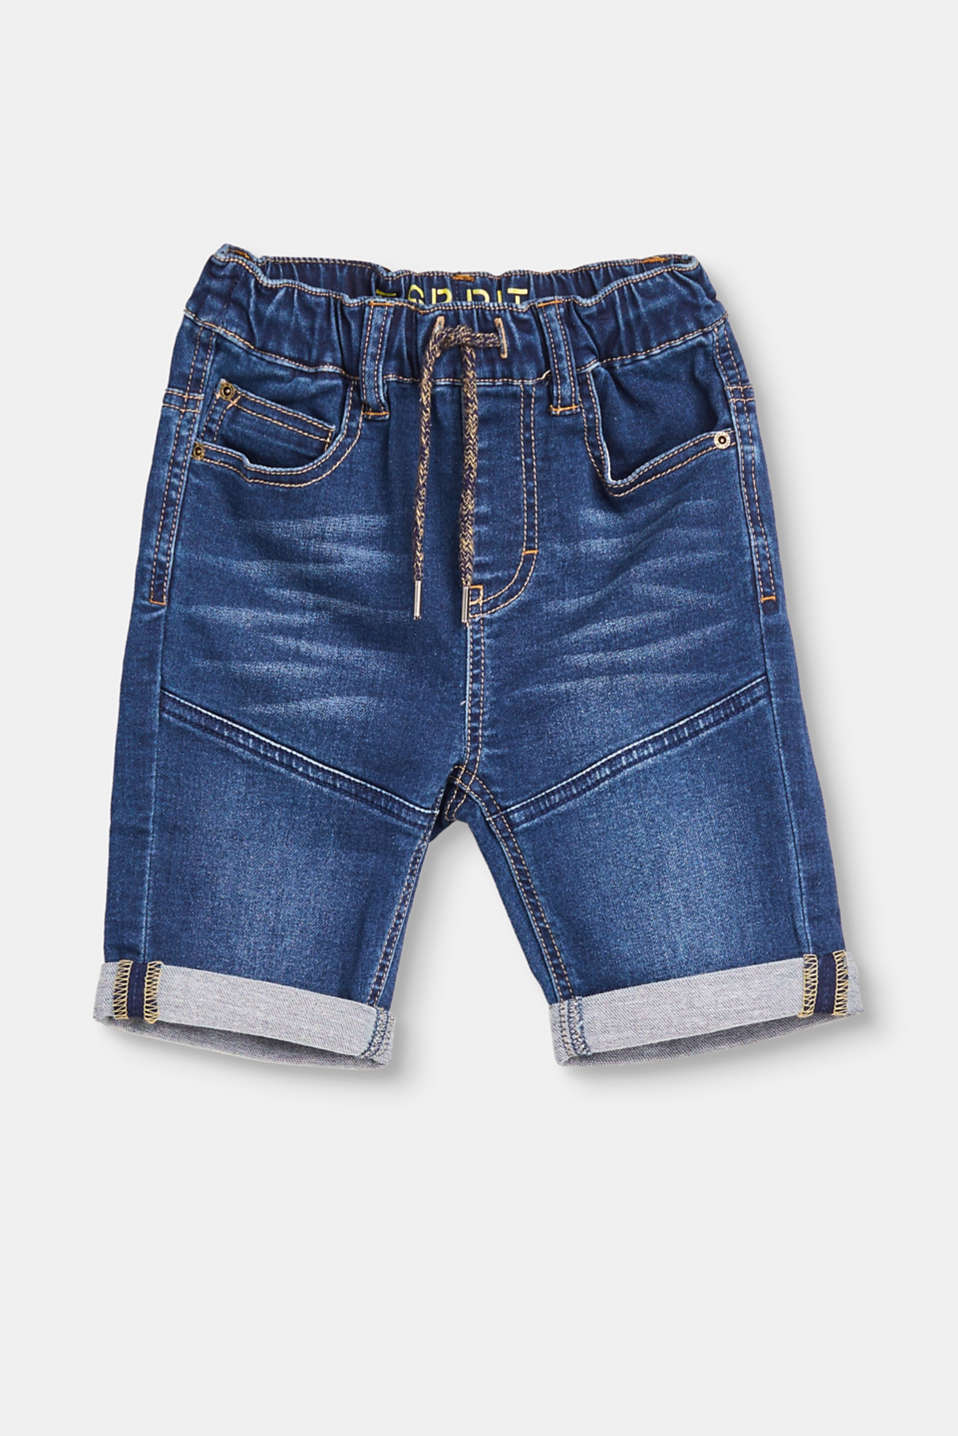 Esprit - Denim jogg shorts with elasticated waist